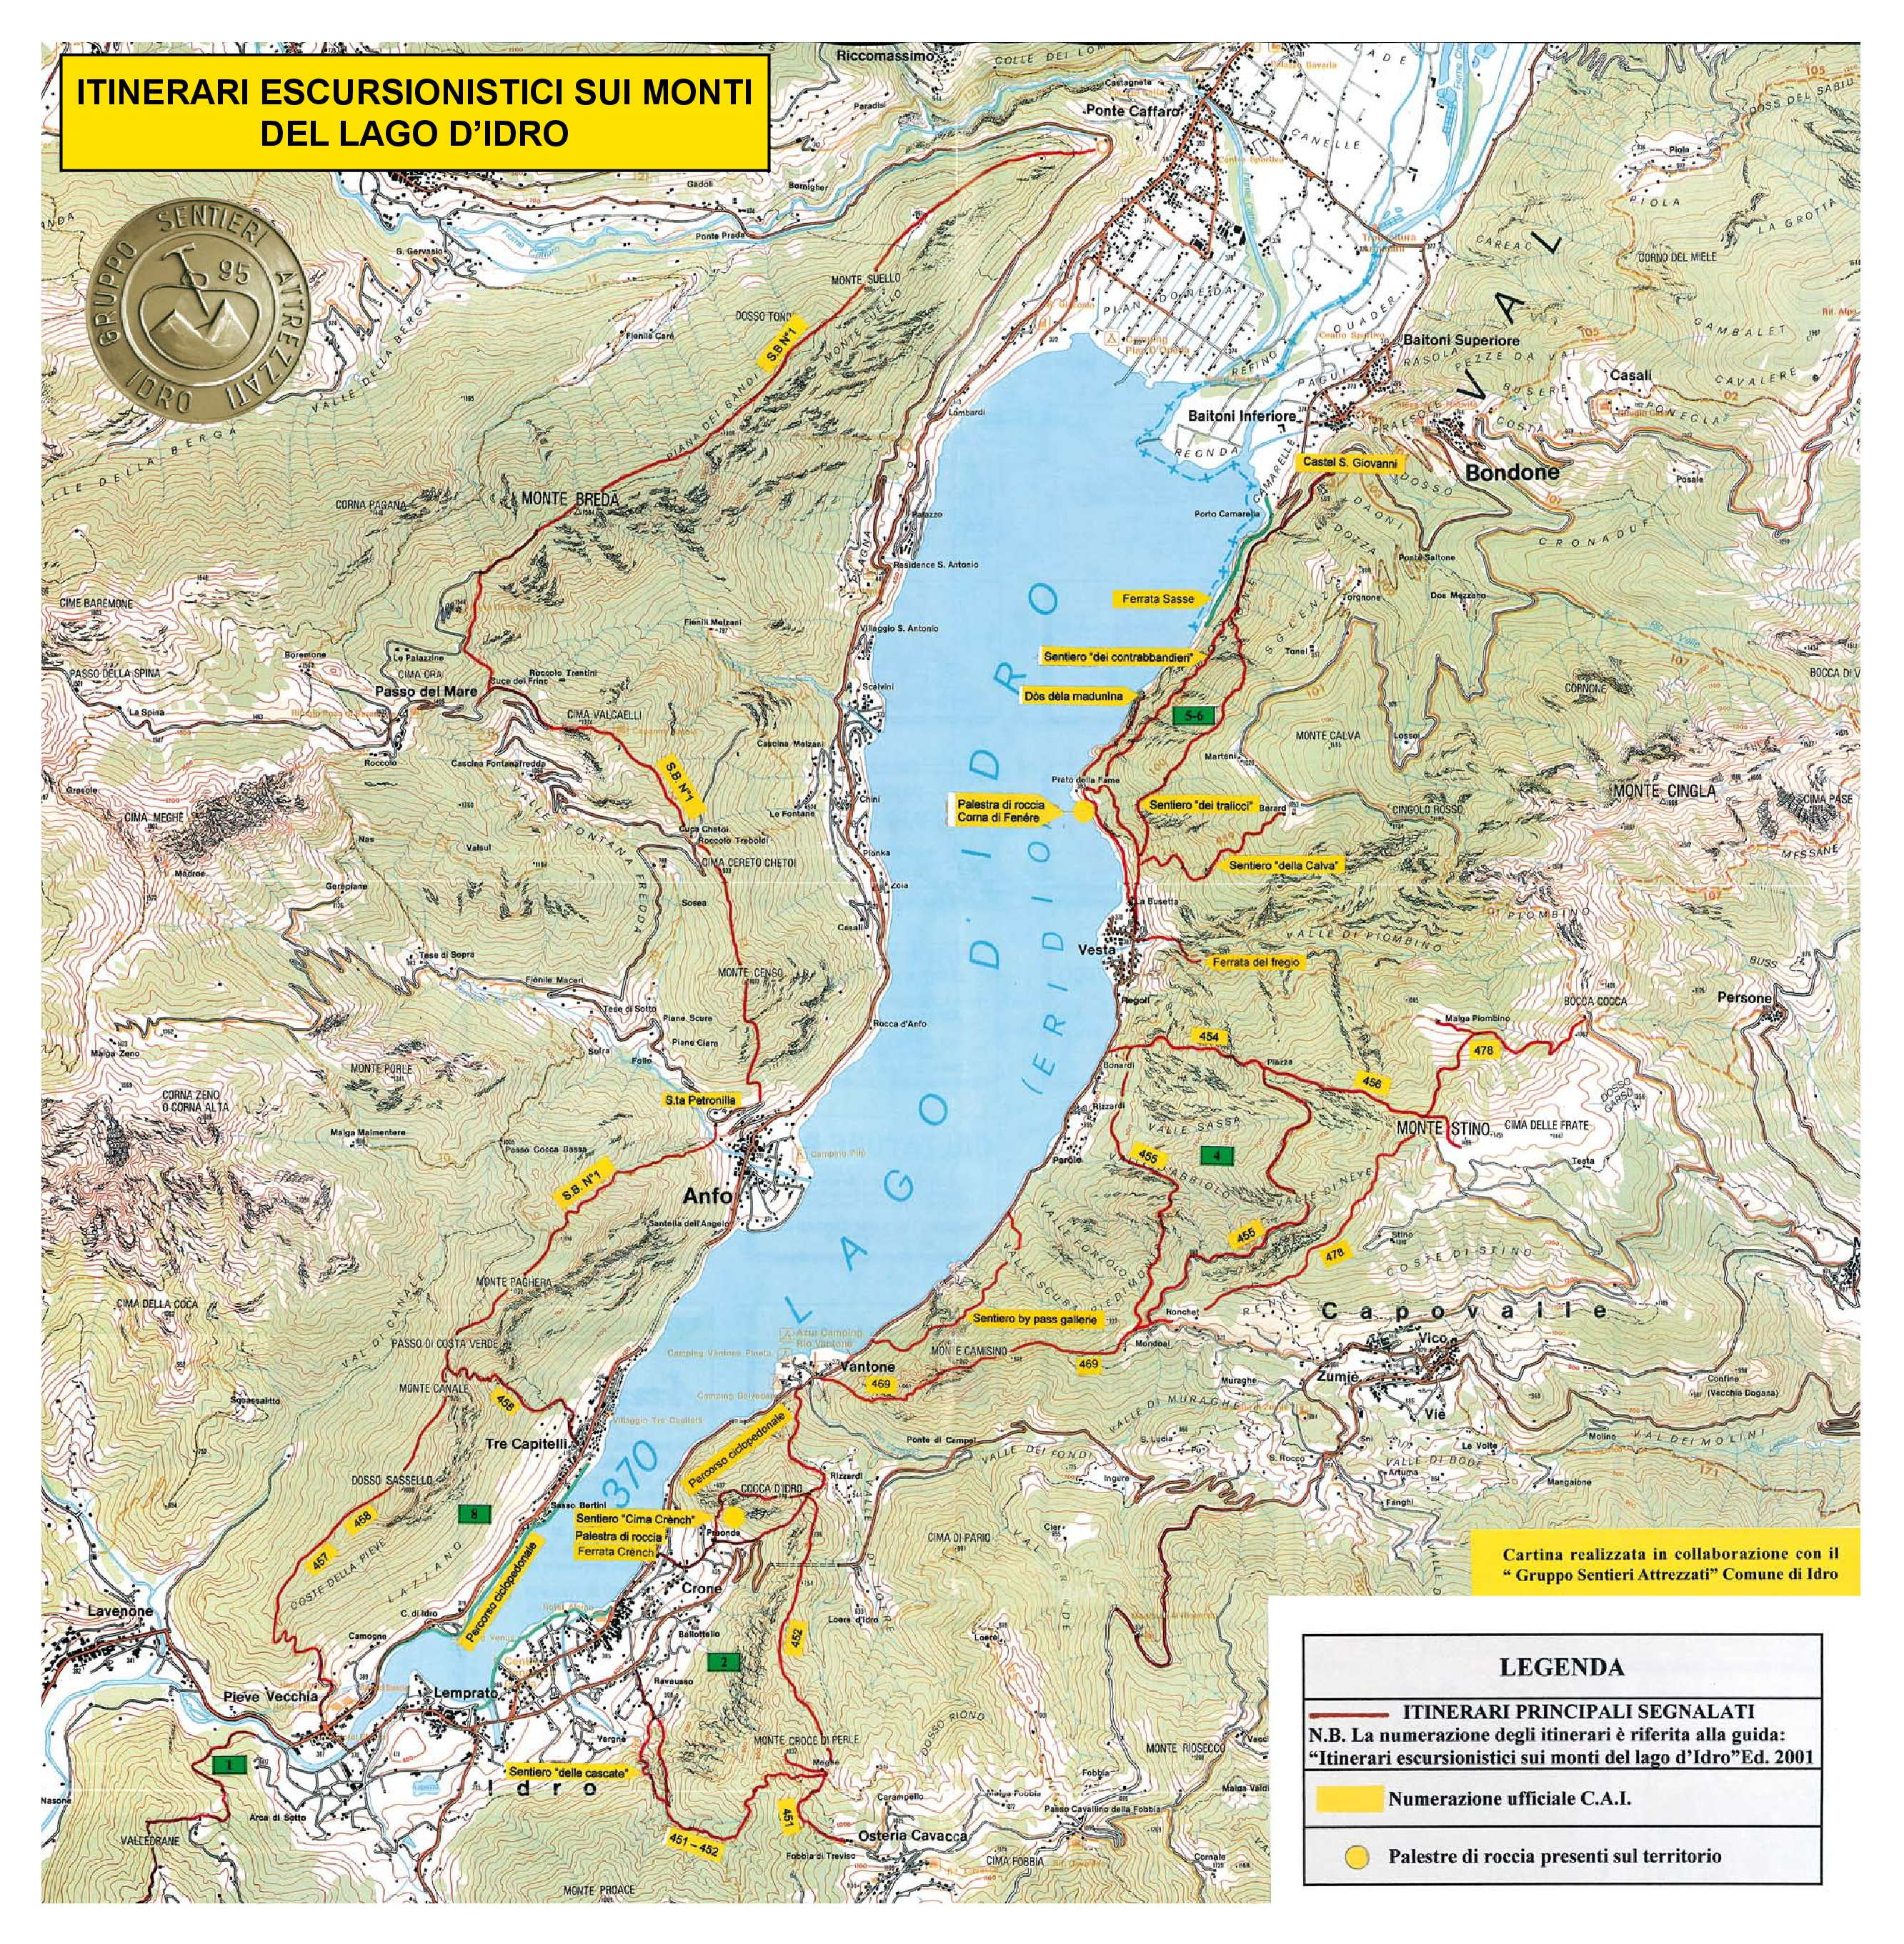 Hiking trail map of Lake Idro